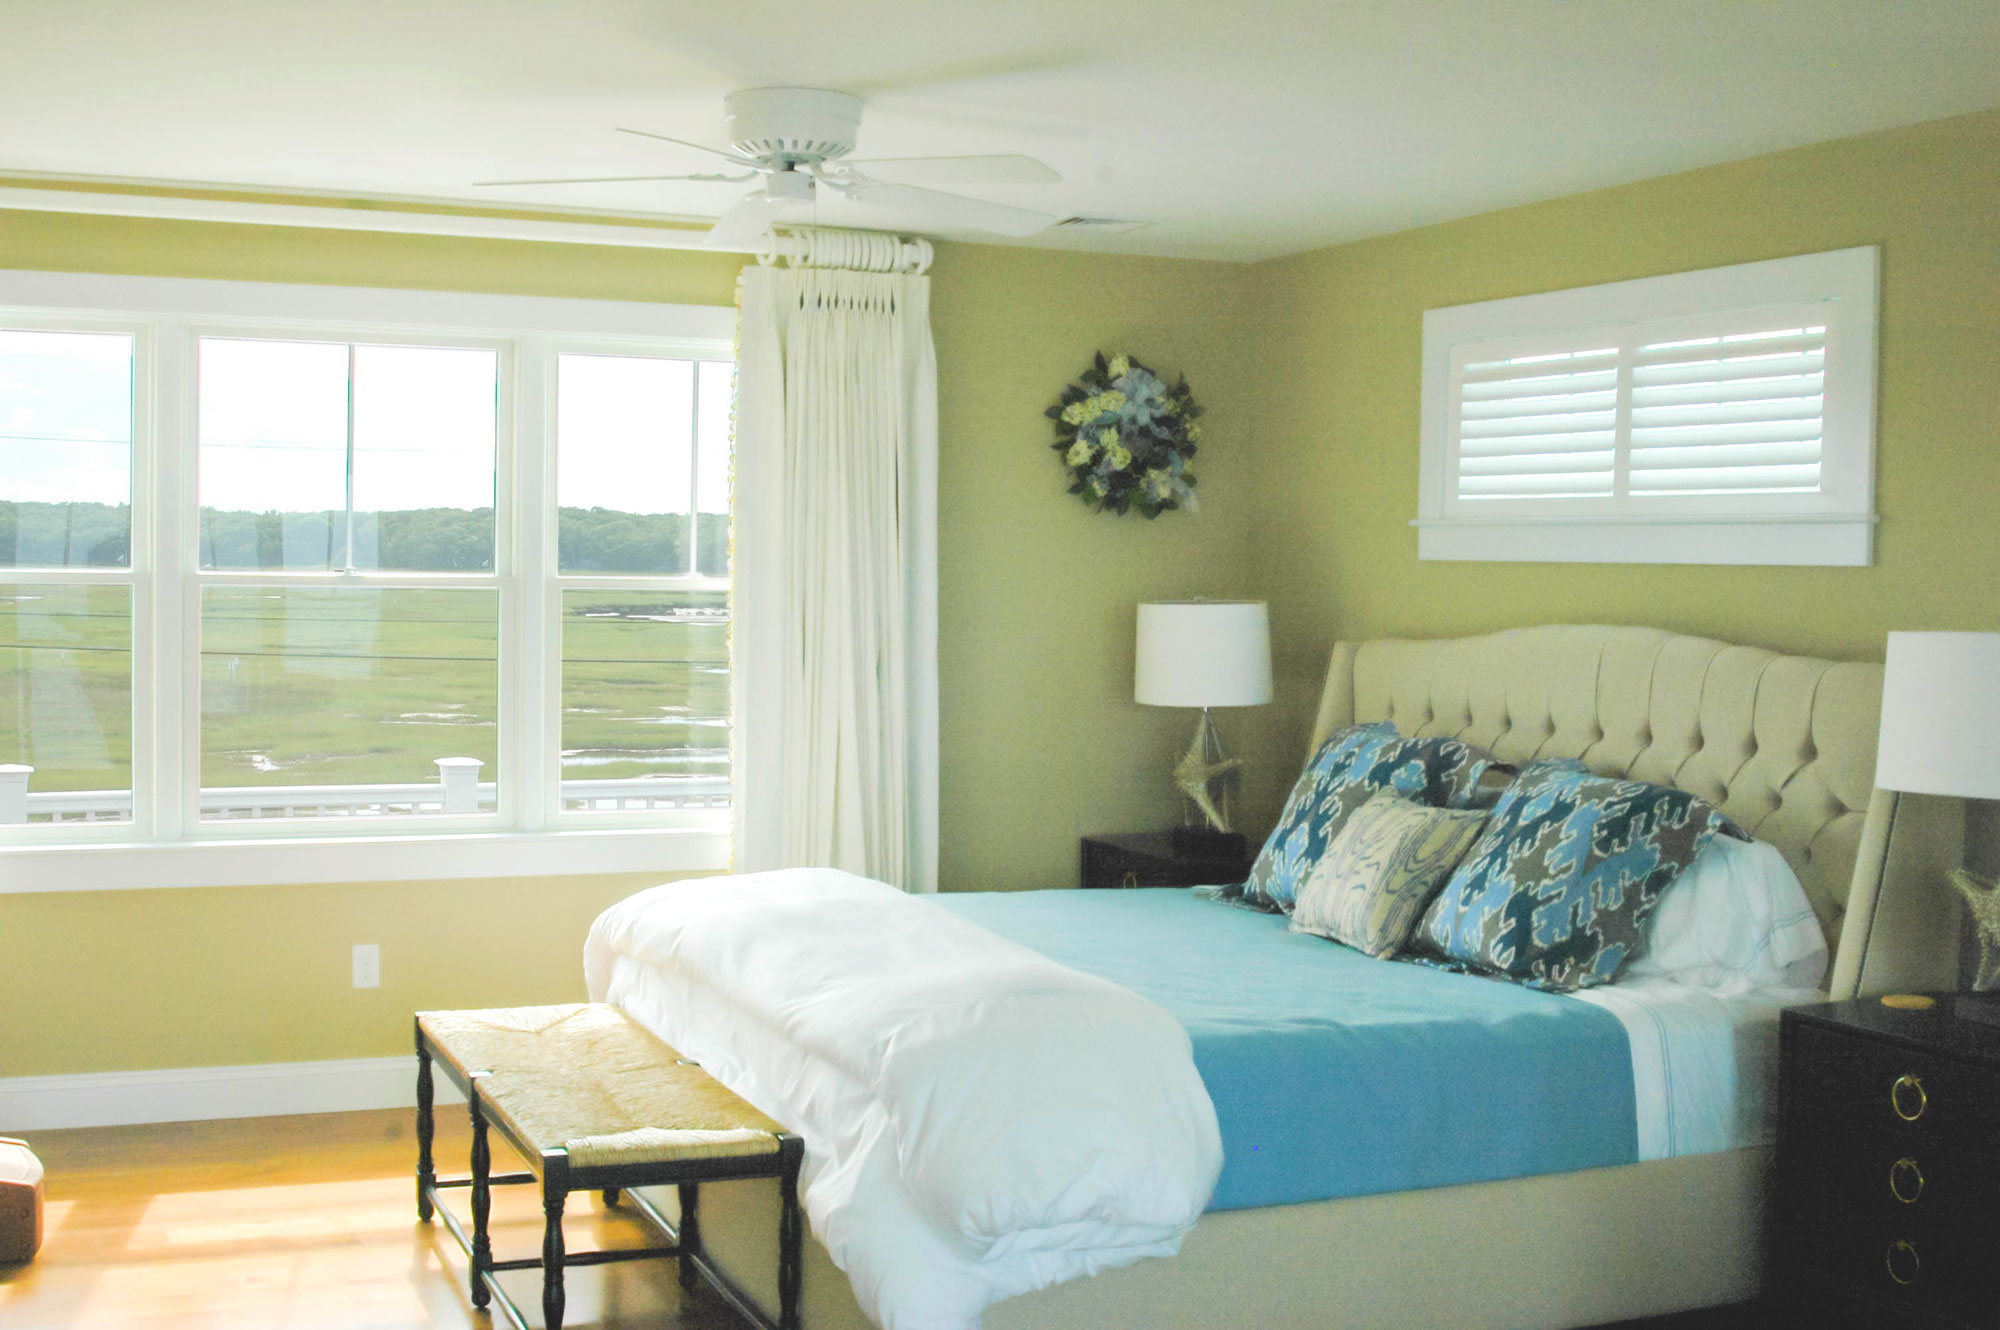 Bedroom at Granite Point, Custom Home Construction in Southern Maine